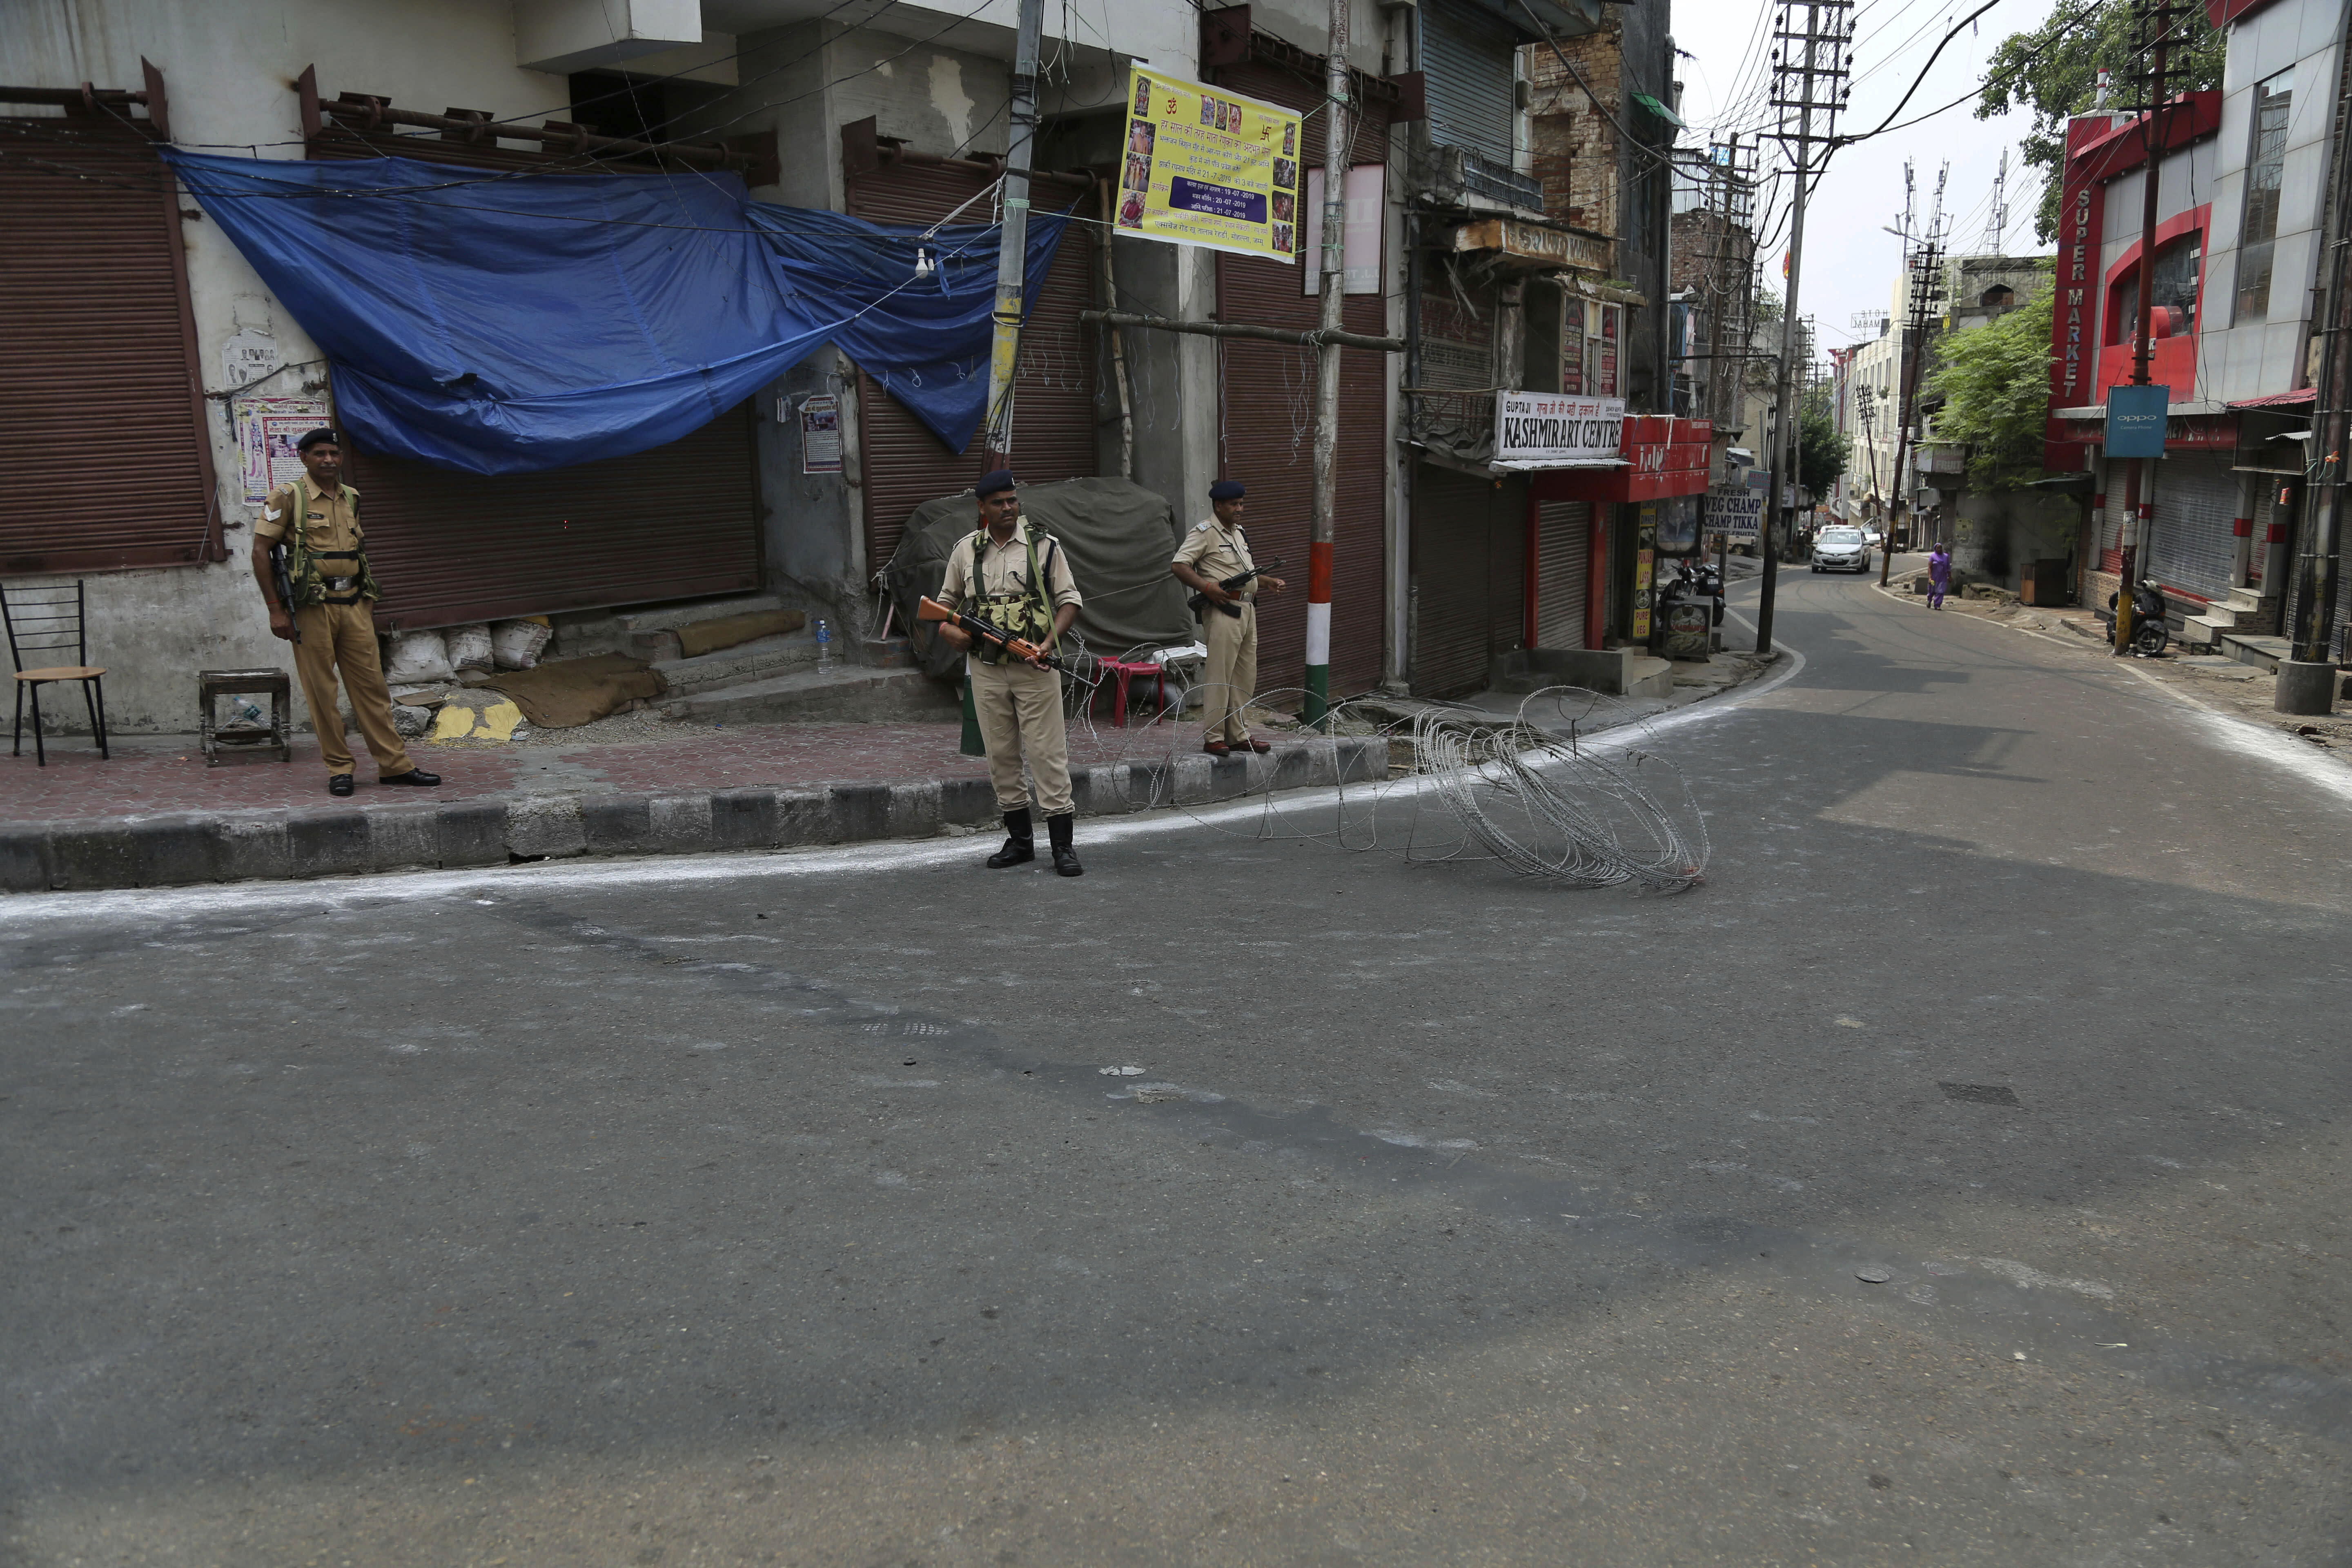 """Indian paramilitary soldiers gurad during security lockdown in Jammu, India, Tuesday, Aug.6, 2019. India's lower house of Parliament was set to ratify a bill Tuesday that would downgrade the governance of India-administered, Muslim-majority Kashmir amid an indefinite security lockdown in the disputed Himalayan region. The Hindu nationalist-led government of Prime Minister Narendra Modi moved the """"Jammu and Kashmir Reorganization Bill"""" for a vote by the Lok Sahba a day after the measure was introduced alongside a presidential order dissolving a constitutional provision that gave Kashmiris exclusive, hereditary rights. (AP Photo/Channi Anand)"""